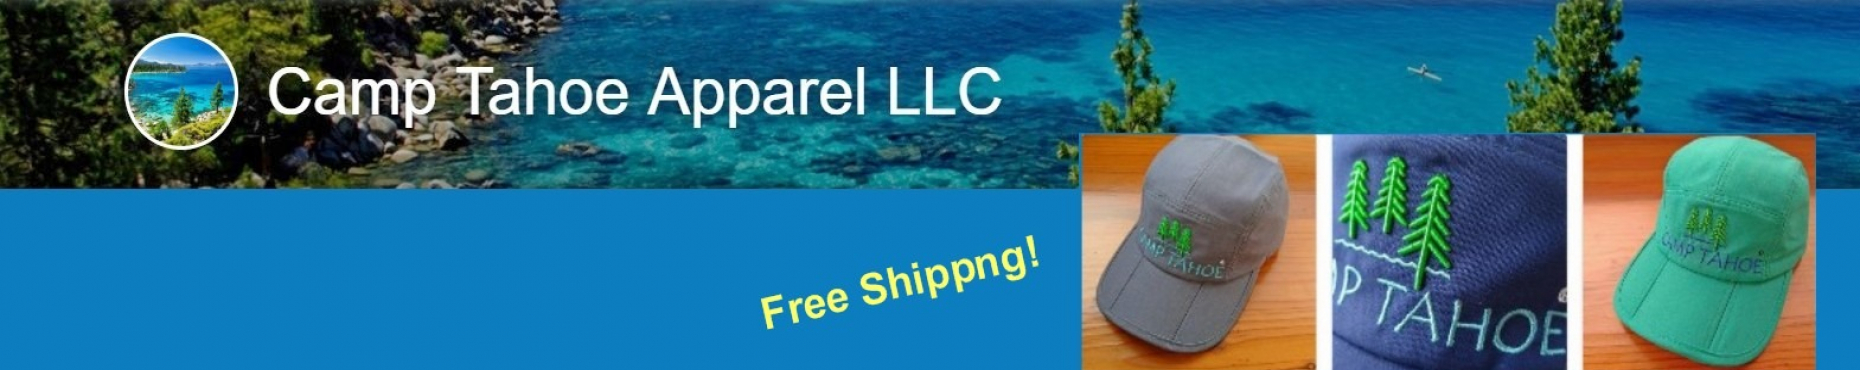 gallery/final banner ad with free shipping